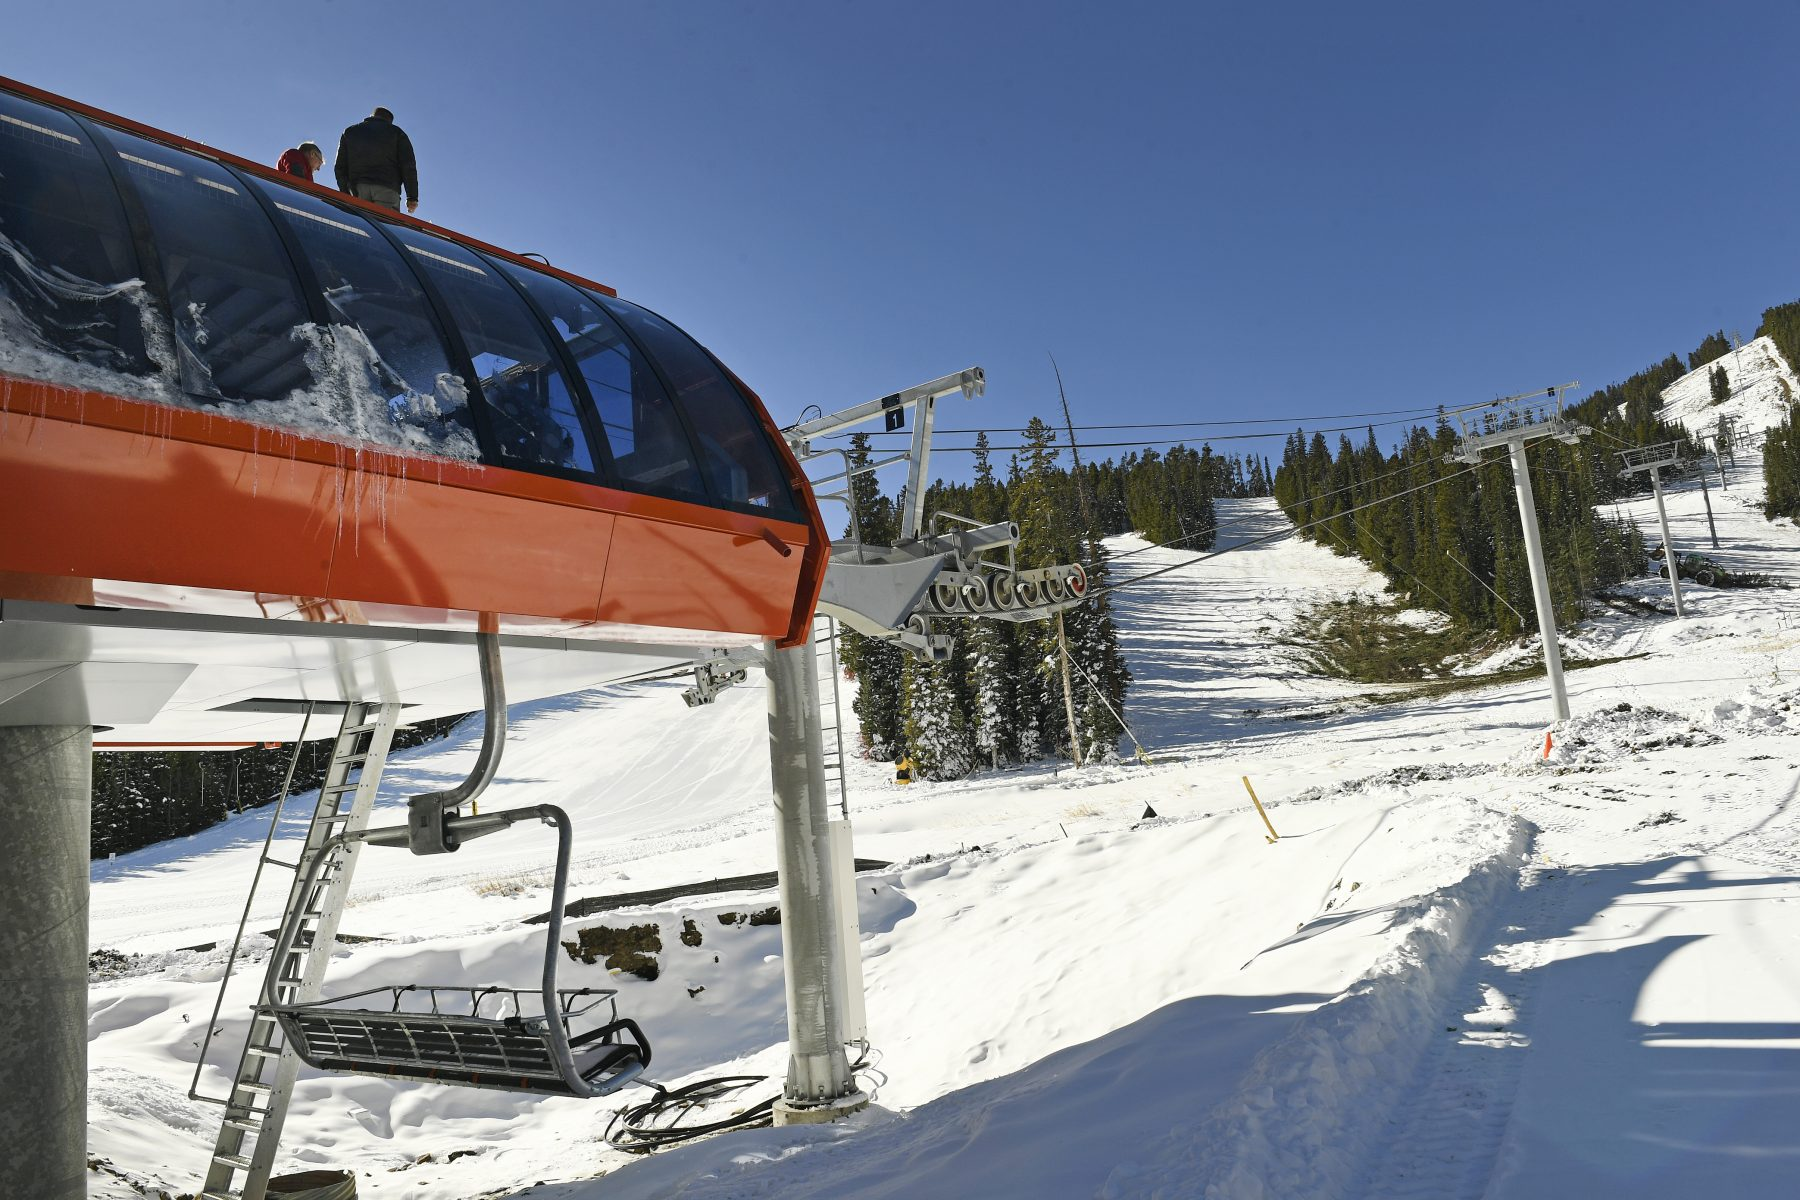 Eldora Mountain Resort. Photo Denver Post. Forest Service grants Eldora ski resort's expansion request.